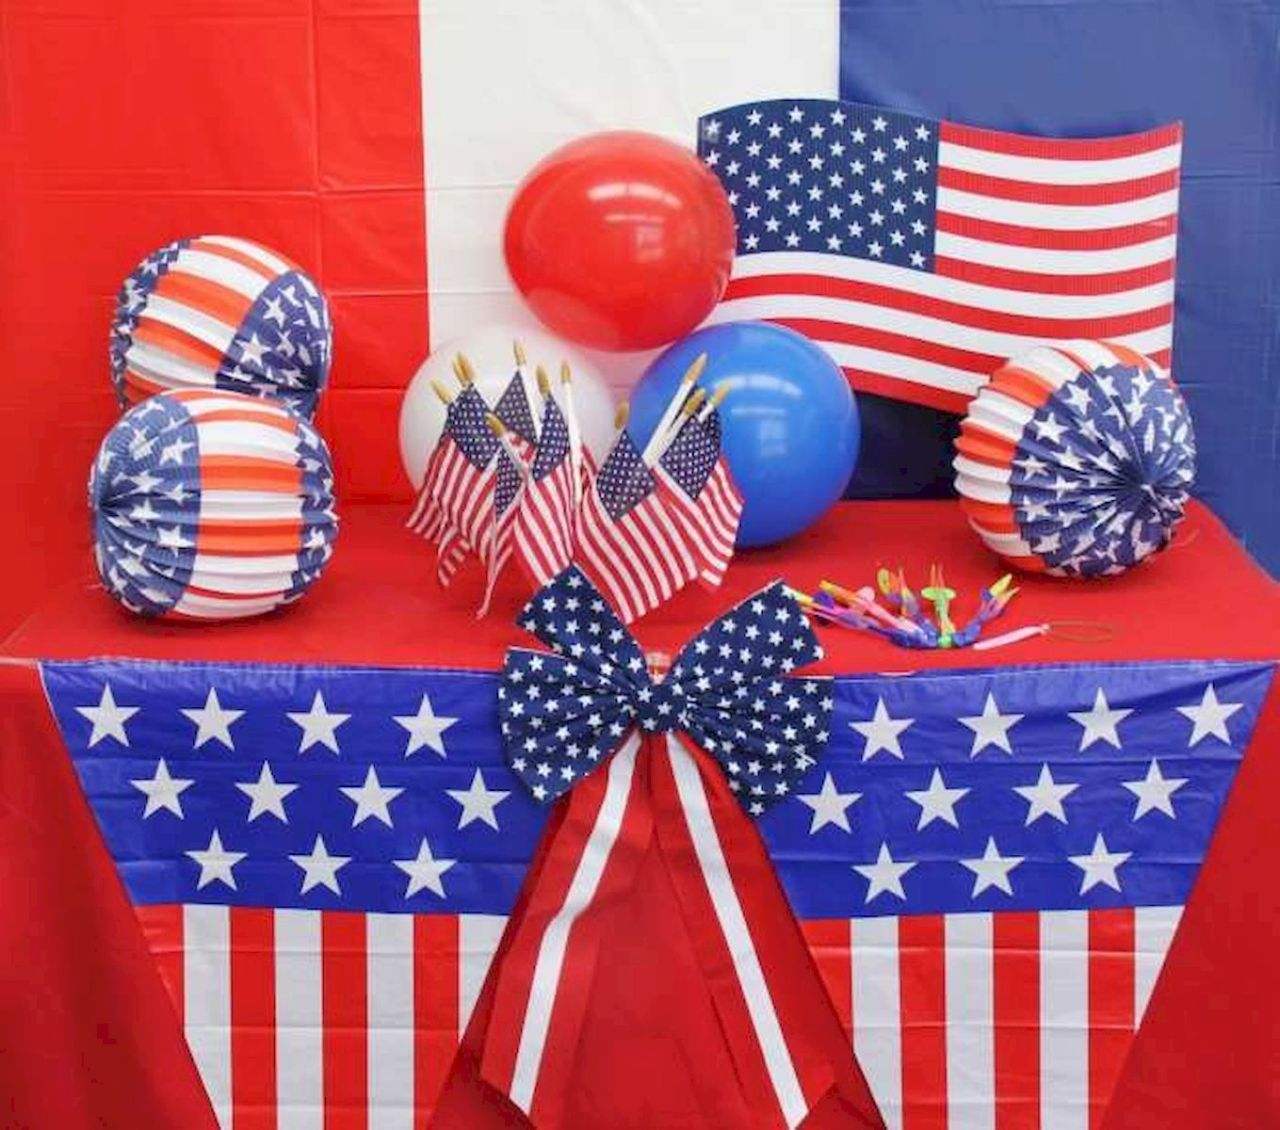 80 Diy America Independence Day Decor Ideas And Design 4th Of July Decorations America Independence Day 4th Of July